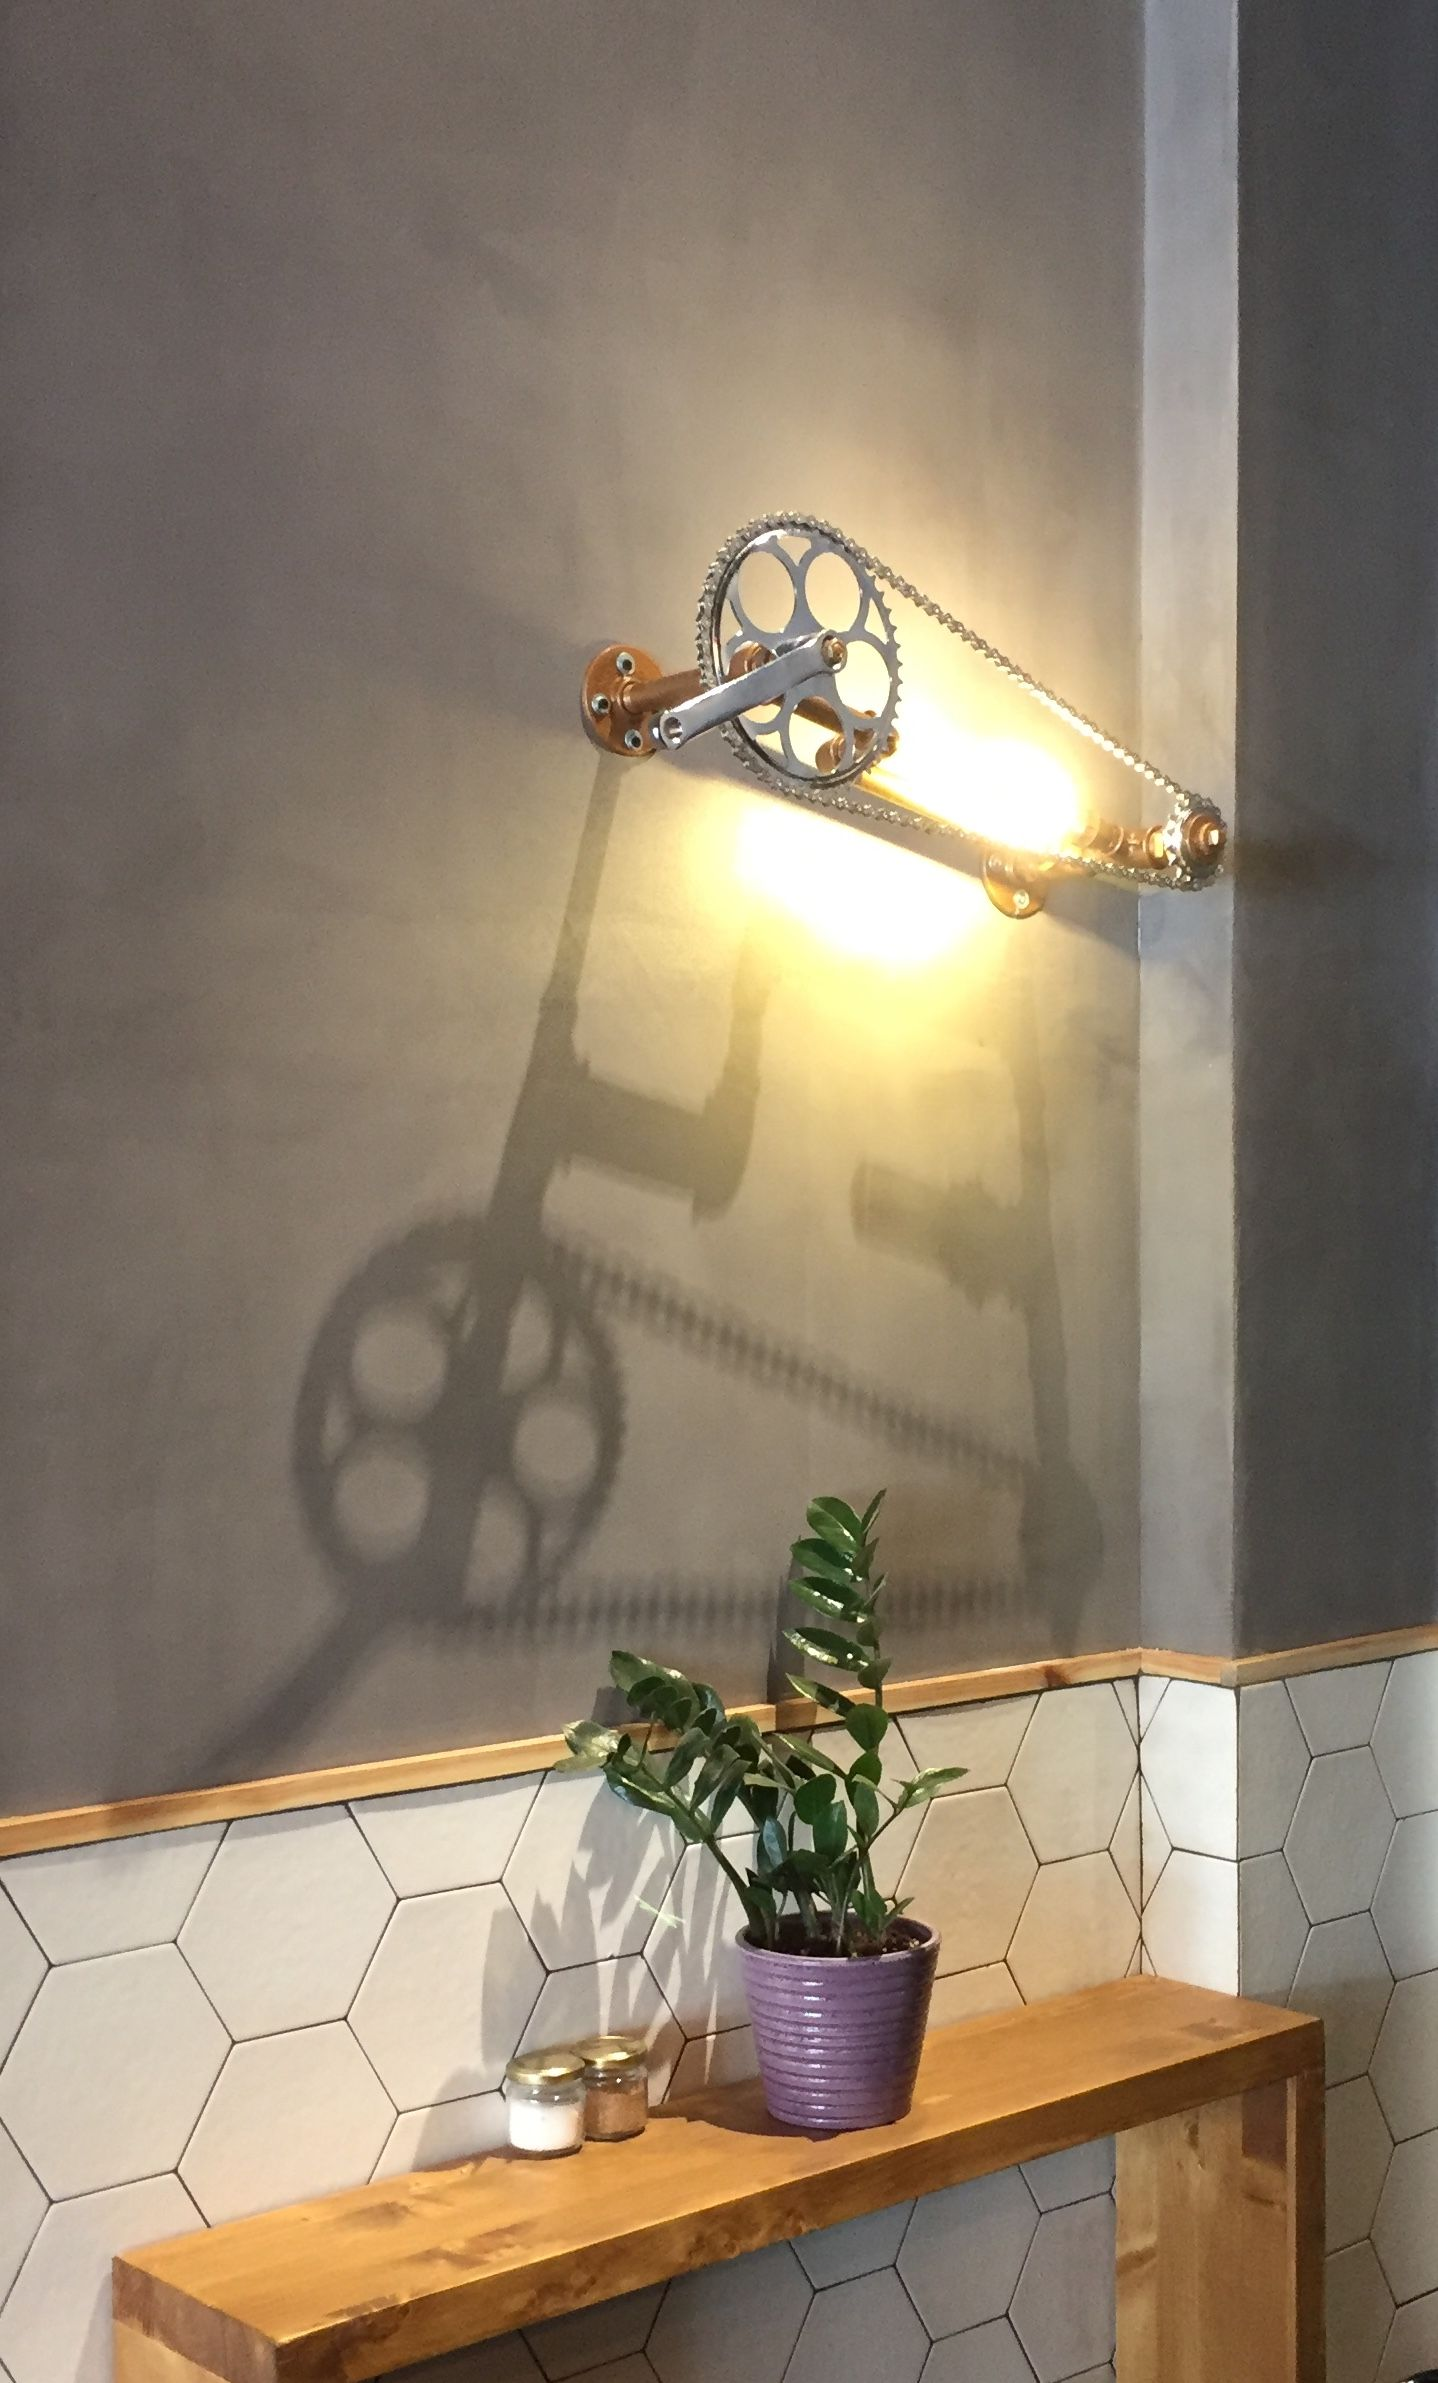 Pin by Ioannis Psomiadis on DIYHome Wall lights, Decor